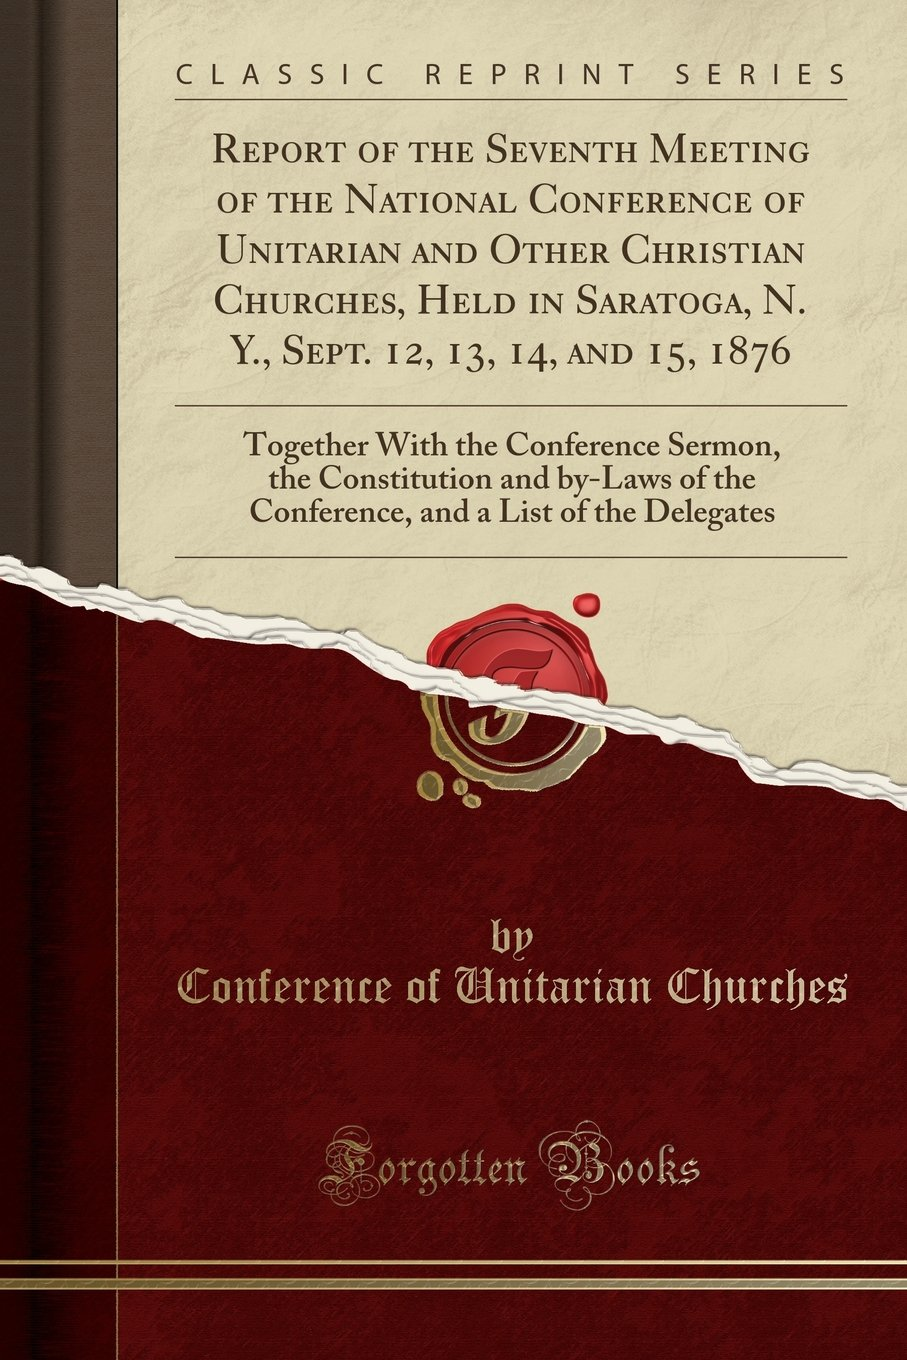 Read Online Report of the Seventh Meeting of the National Conference of Unitarian and Other Christian Churches, Held in Saratoga, N. Y., Sept. 12, 13, 14, and 15, ... and by-Laws of the Conference, and a List of ebook